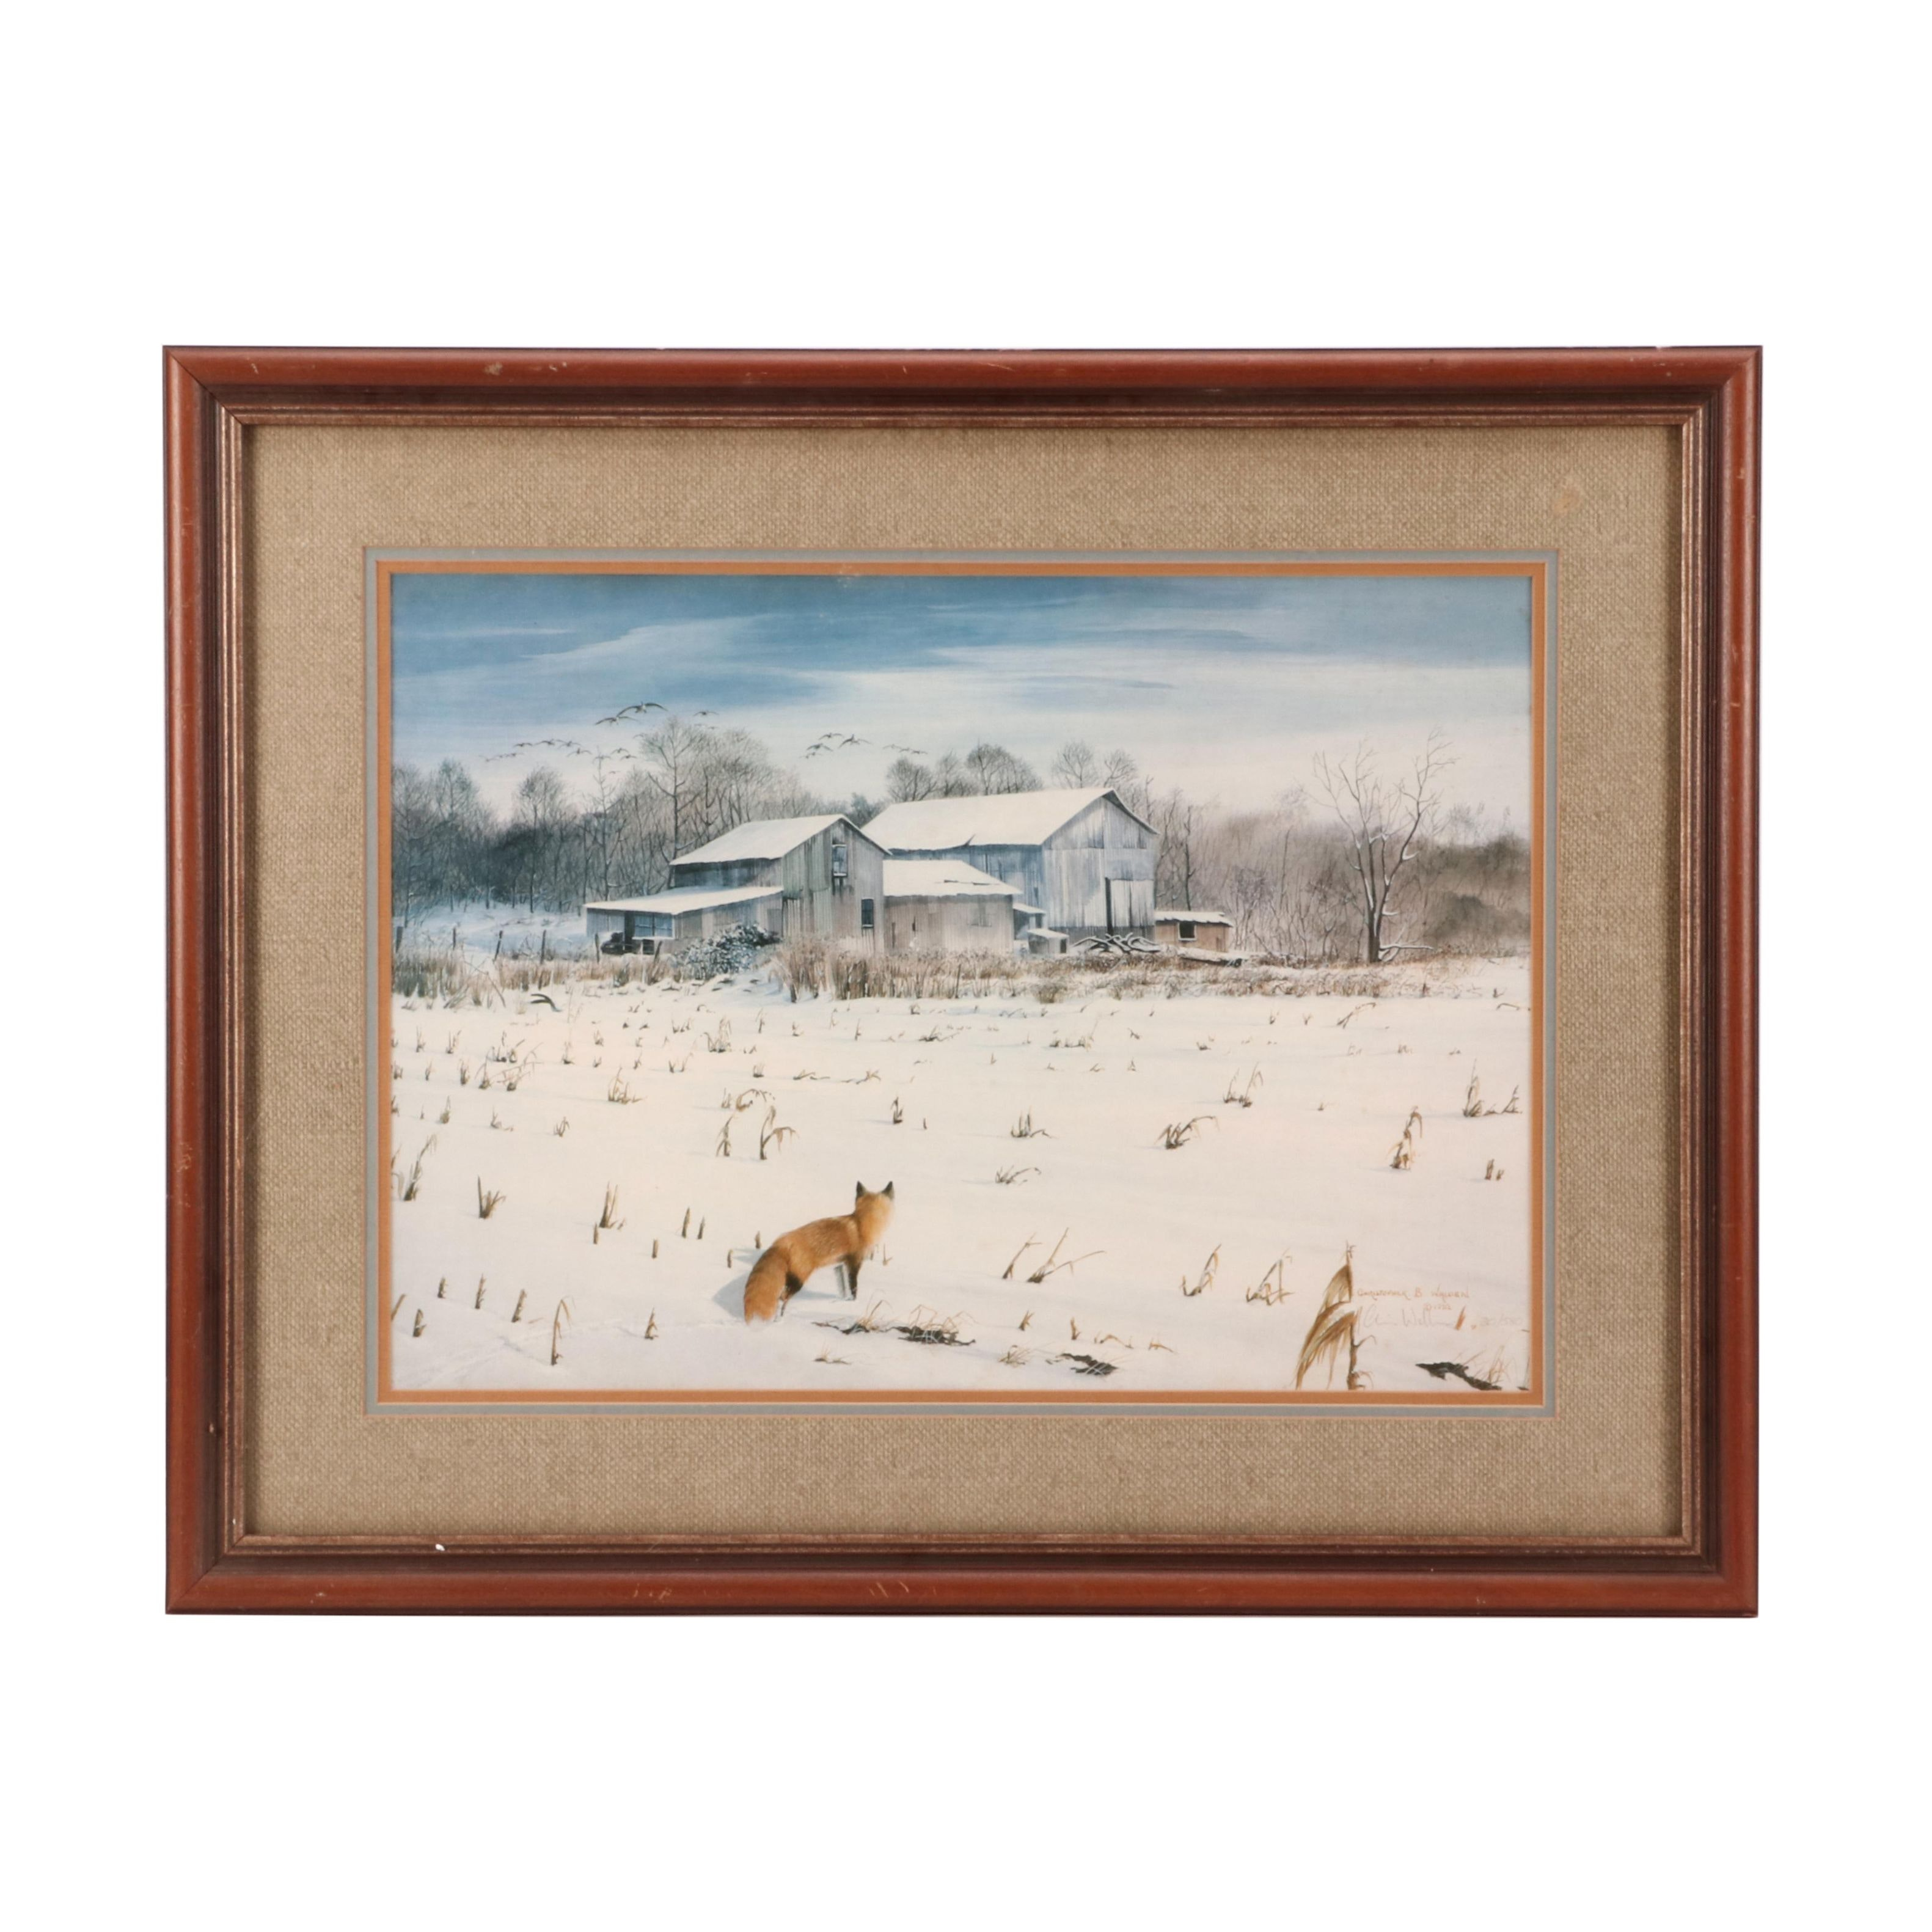 Christopher B. Walden 1982 Limited Edition Offset Lithograph